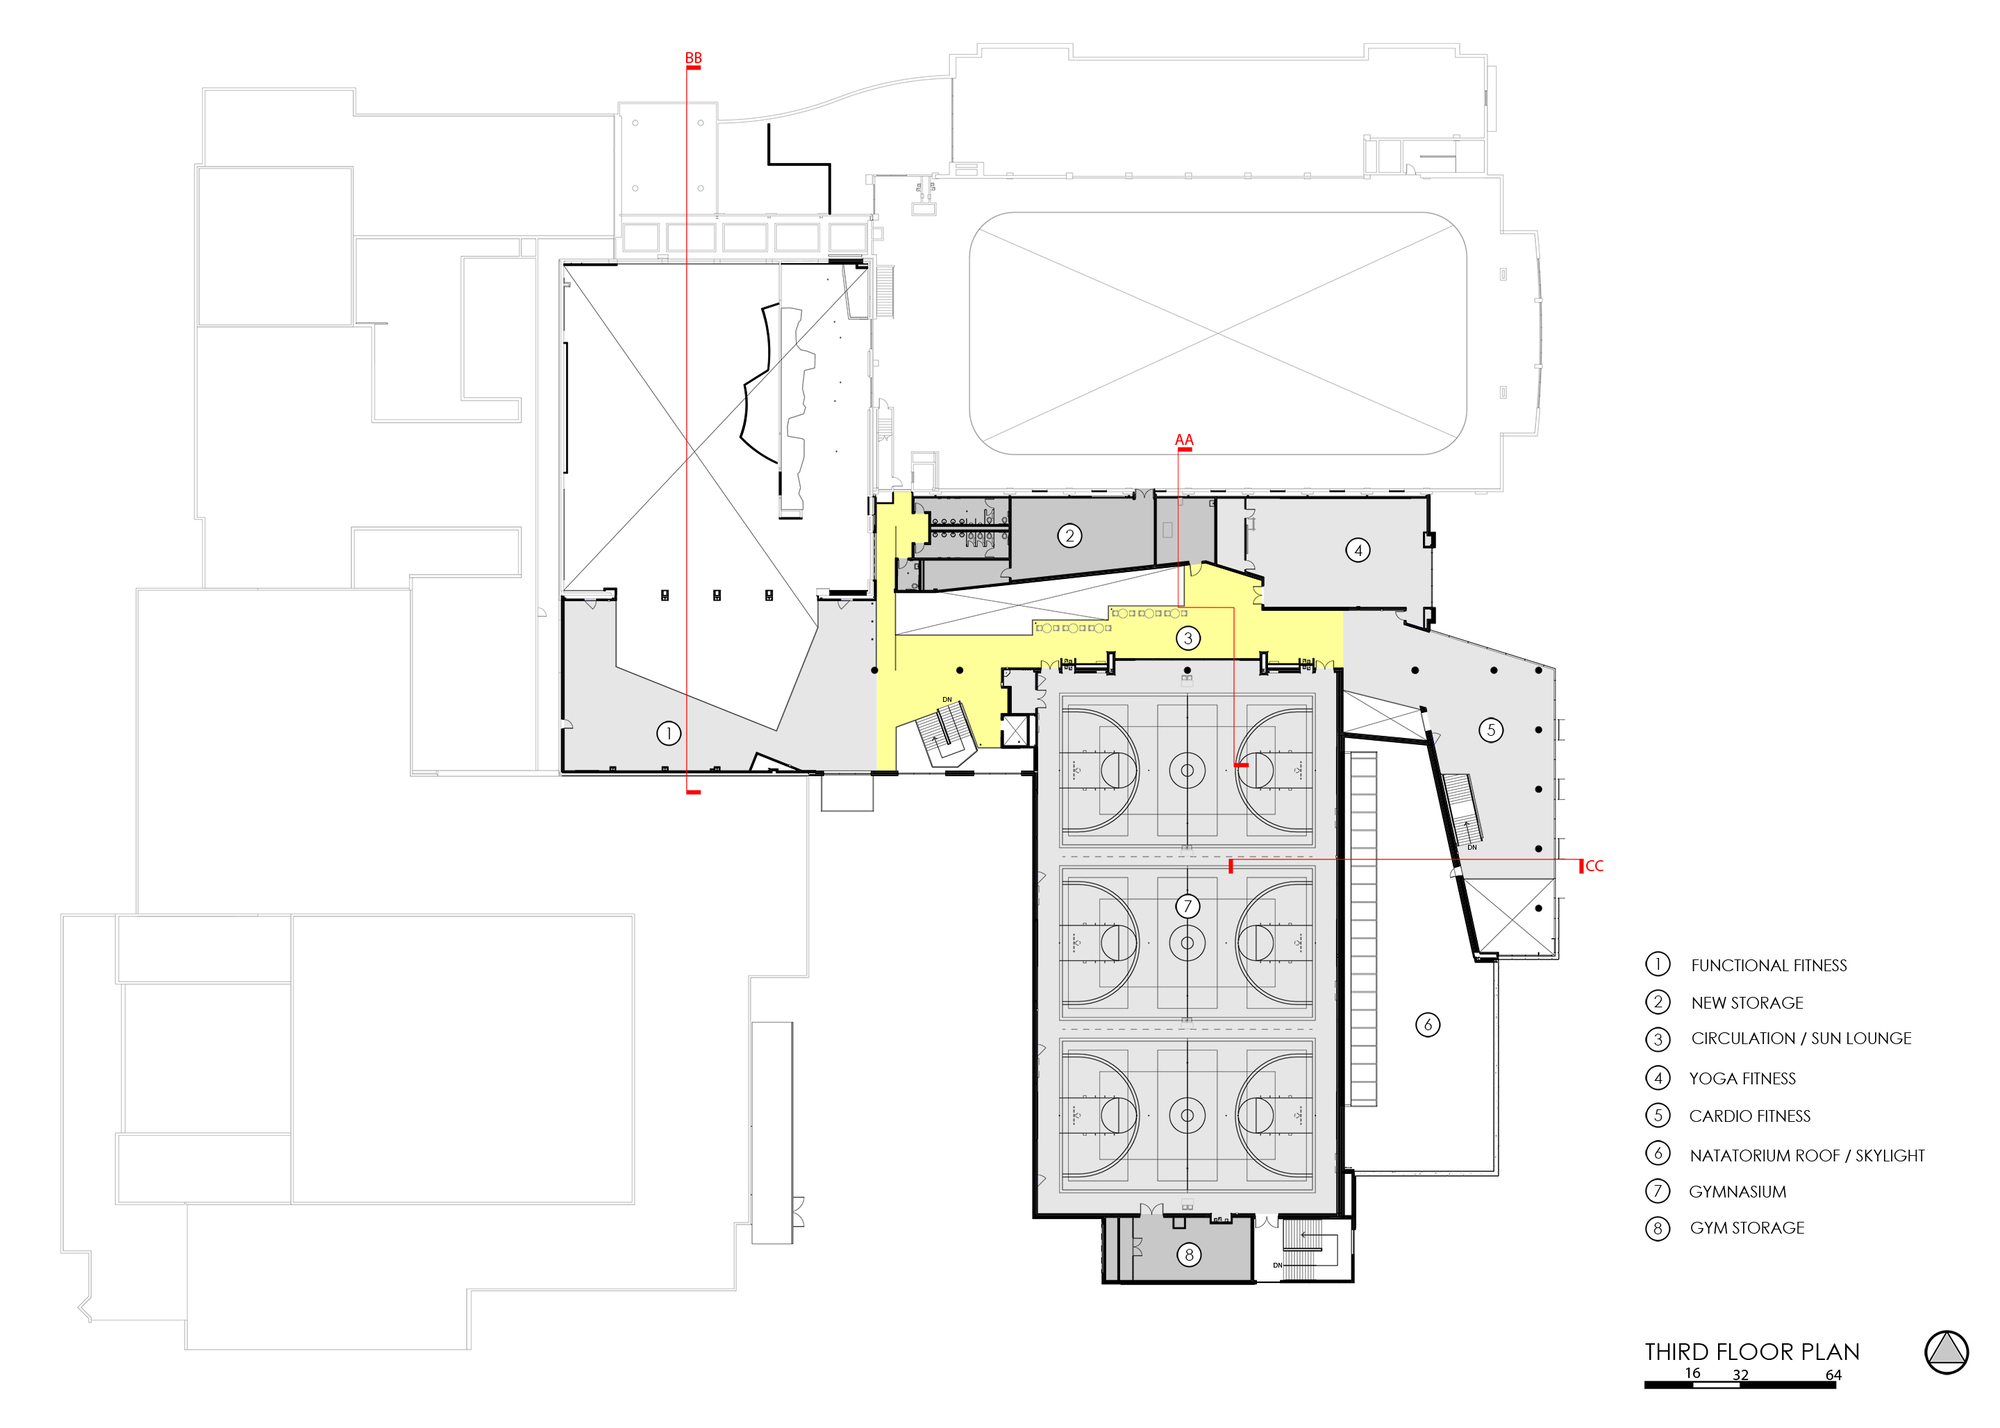 Gallery Of Student Recreation Center Expansion And Renovation Rdg Planning And Design 17